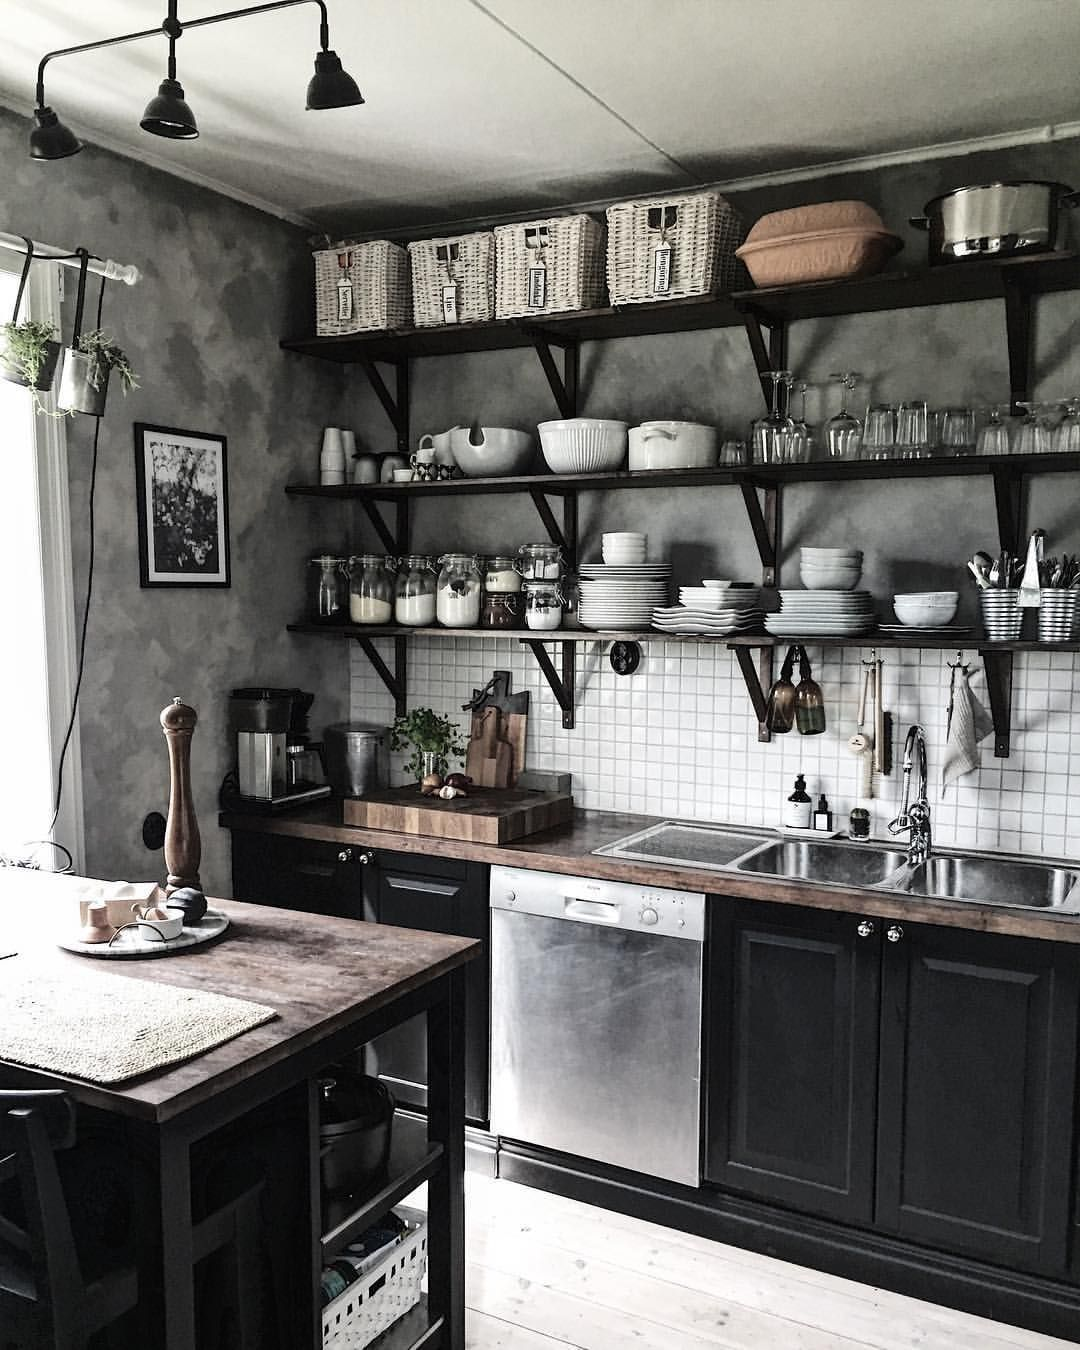 home/mobel   Industrial style kitchen, Industrial decor kitchen, Industrial kitchen design